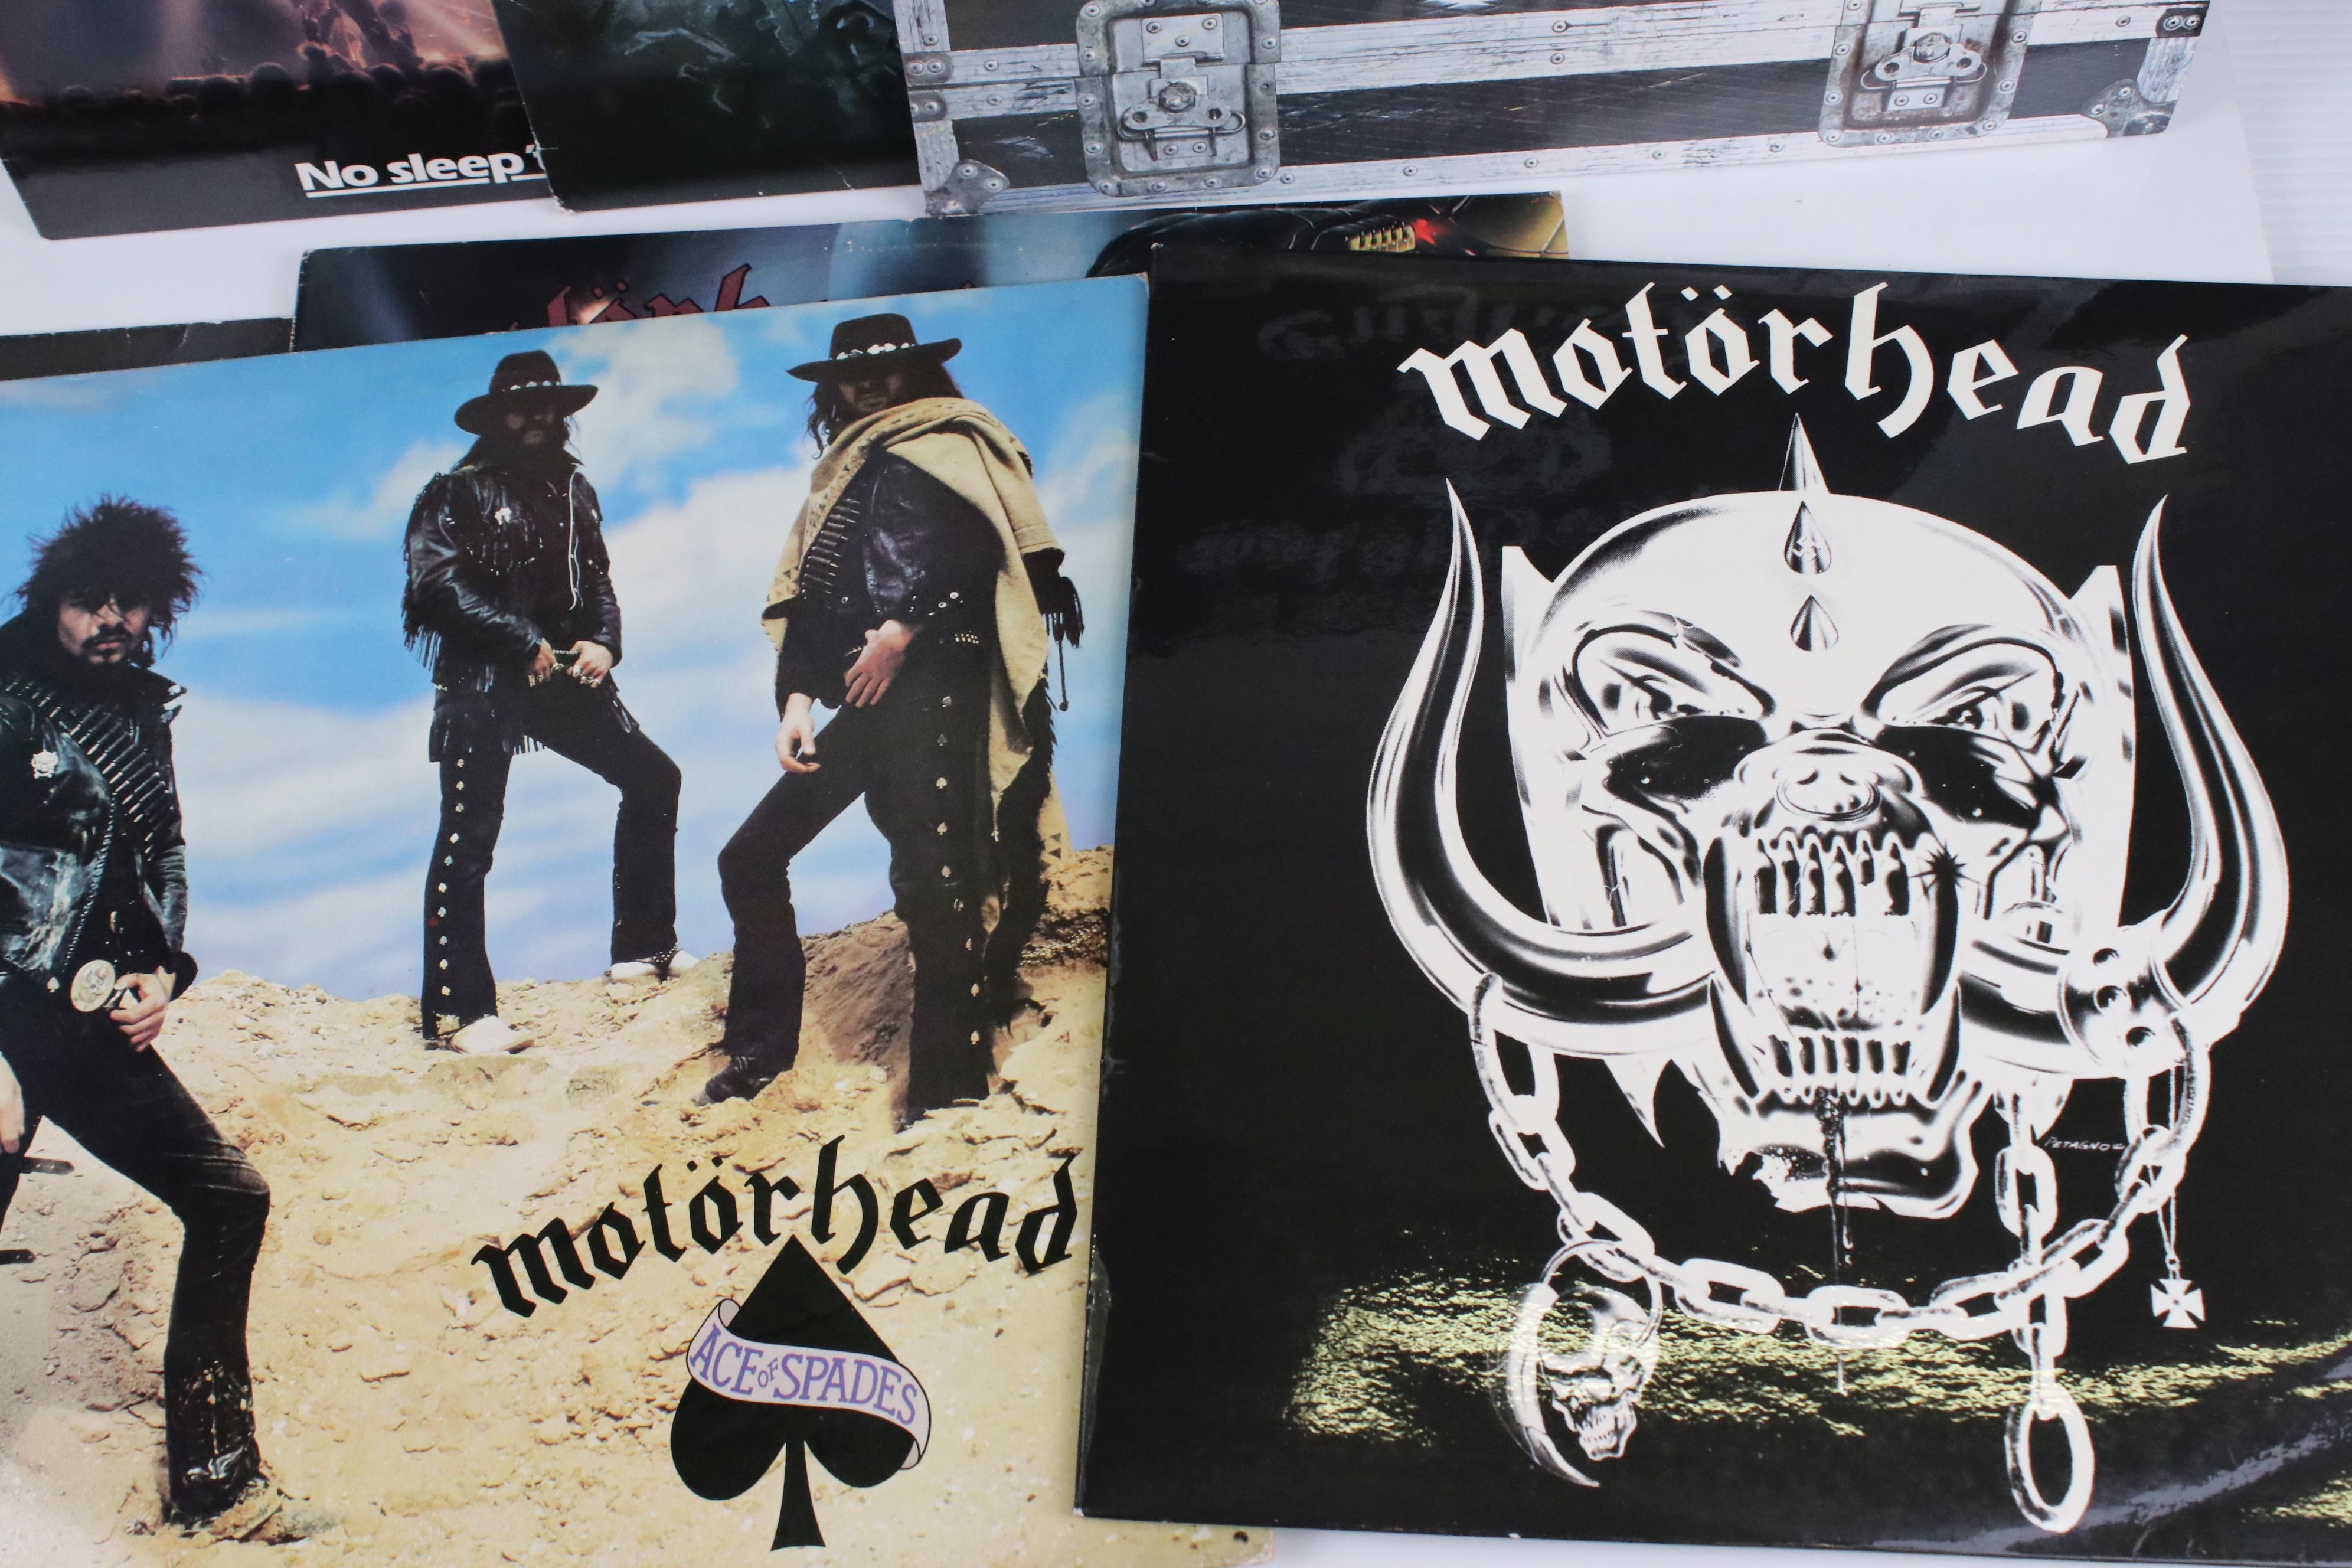 Vinyl - Motorhead 7 LP's to include Self Titled (WLK 2), No Sleep At All (GWLP31), Rock N Roll ( - Image 2 of 5